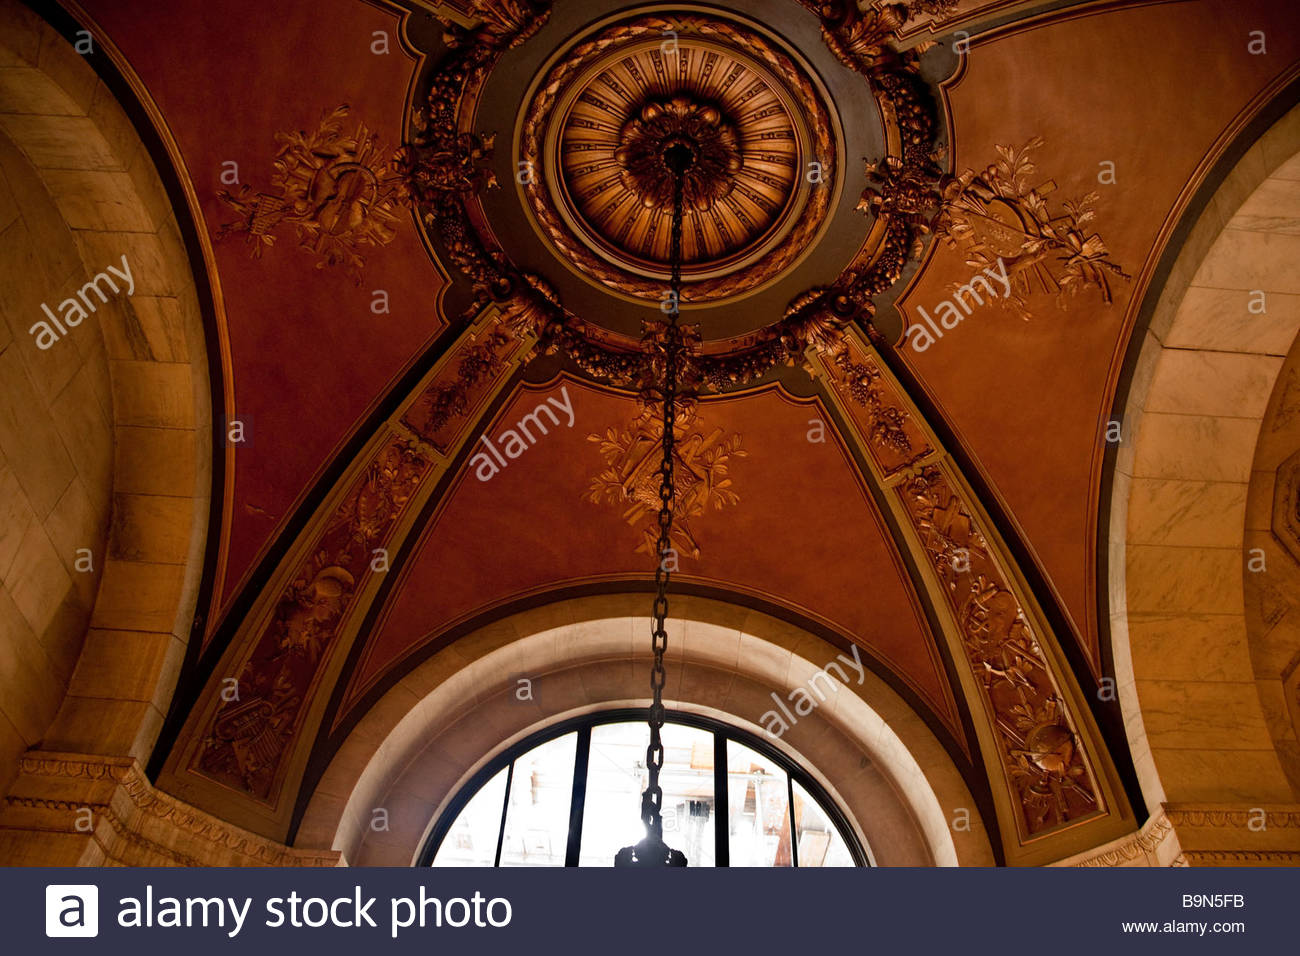 ornate ceiling is the new york library - Stock Image